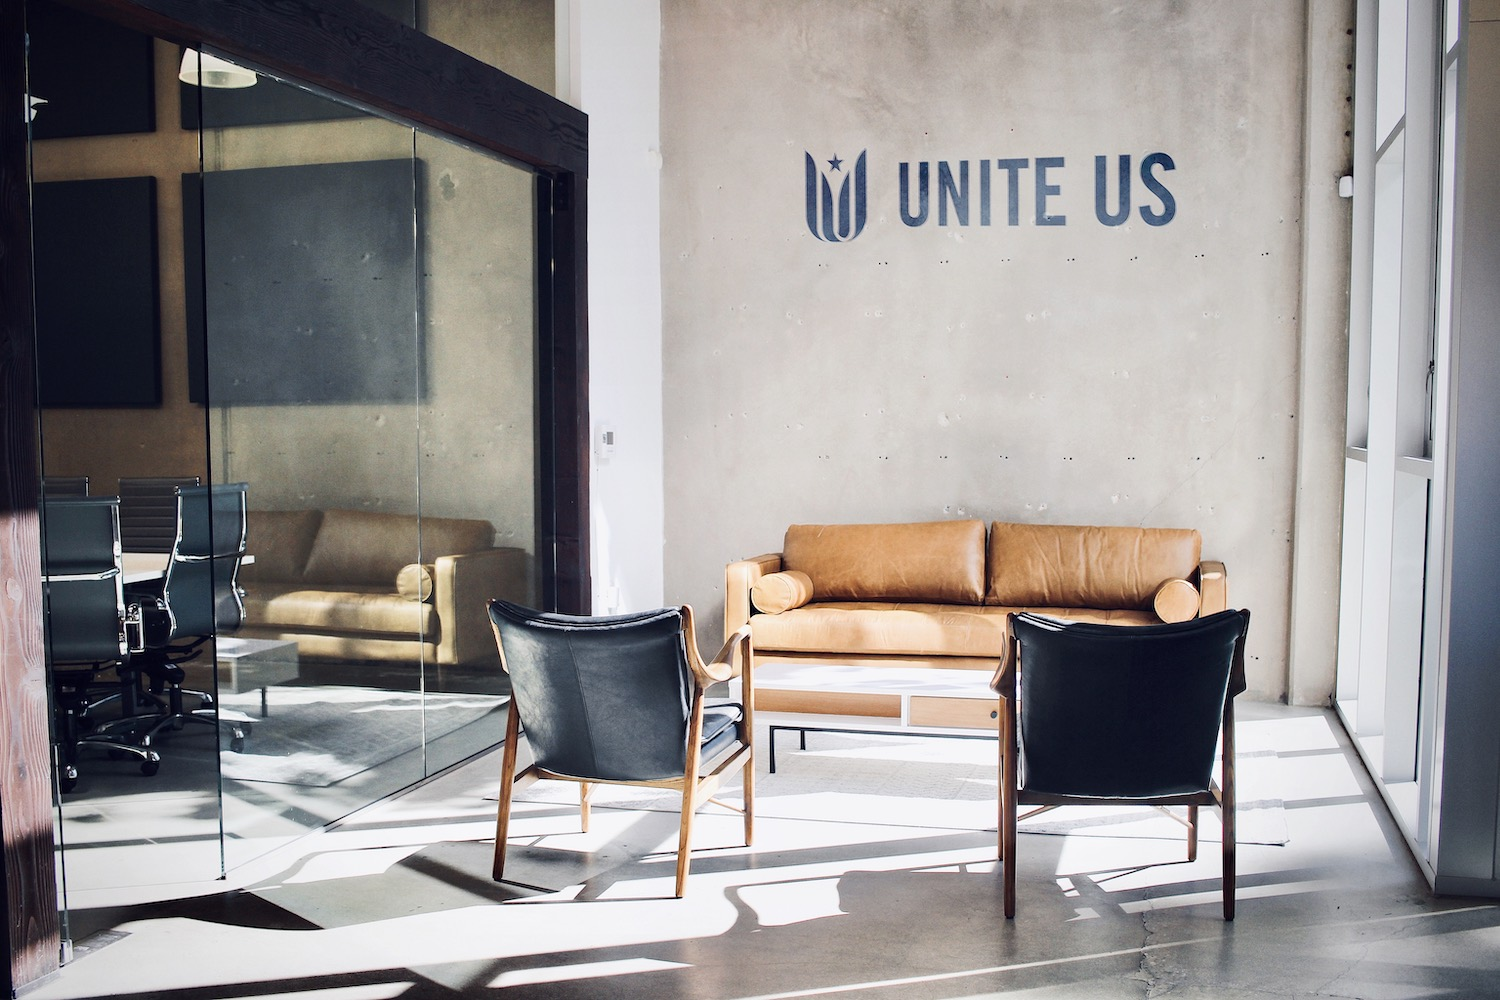 Unite Us Opens Second Headquarters in Los Angeles, Continuing to Strengthen Ties to the Communities We Serve